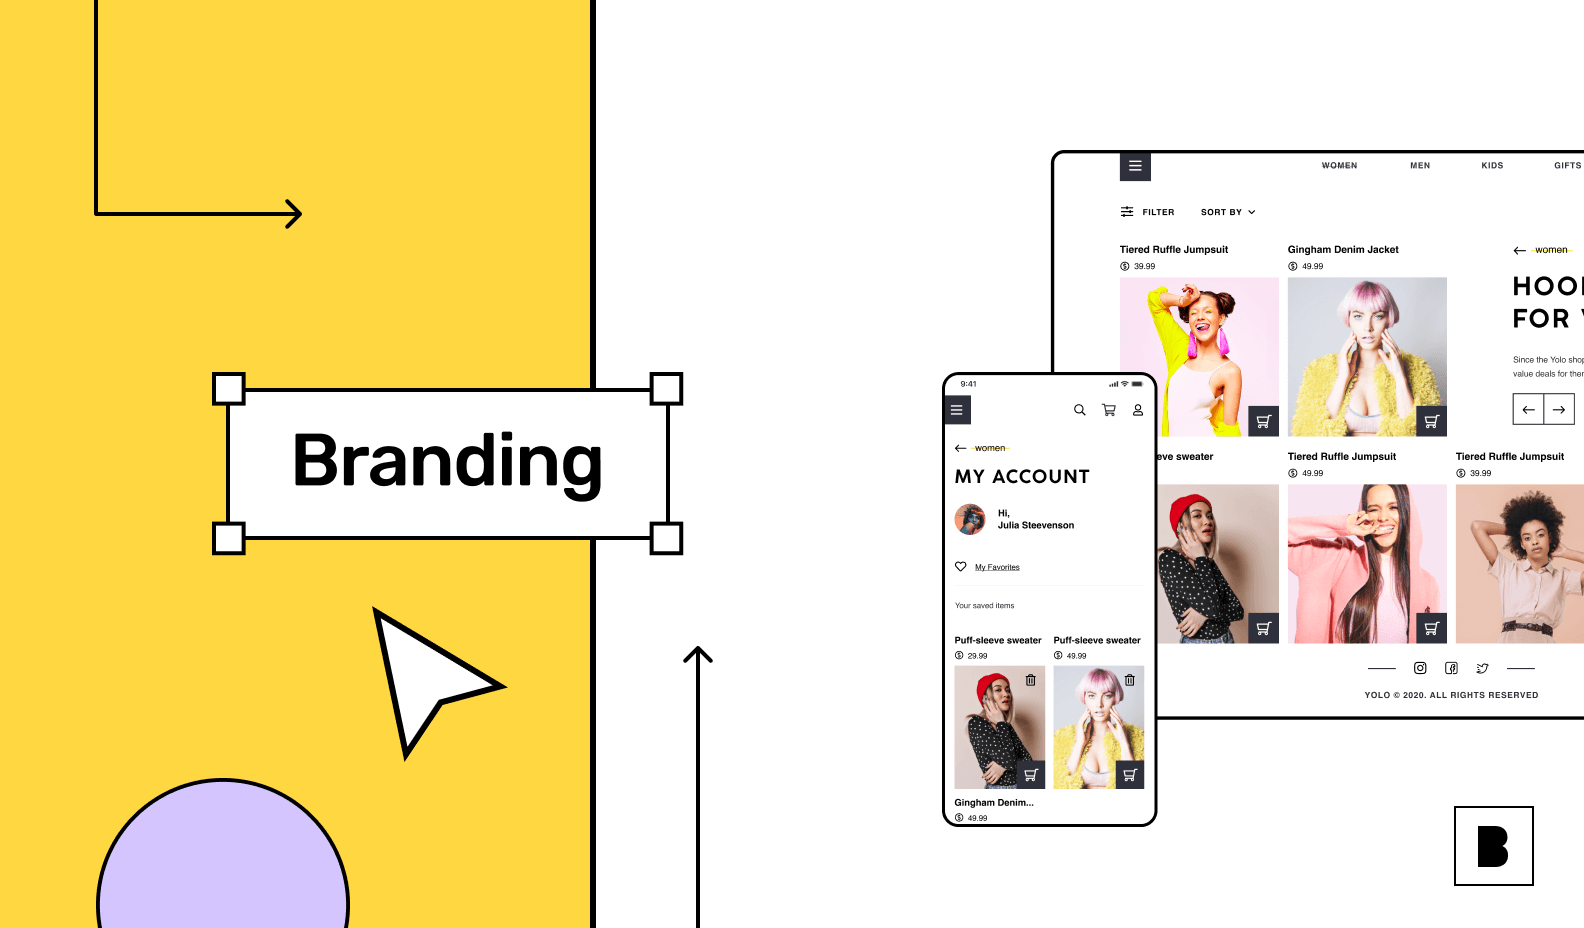 Branding for your ecommerce products